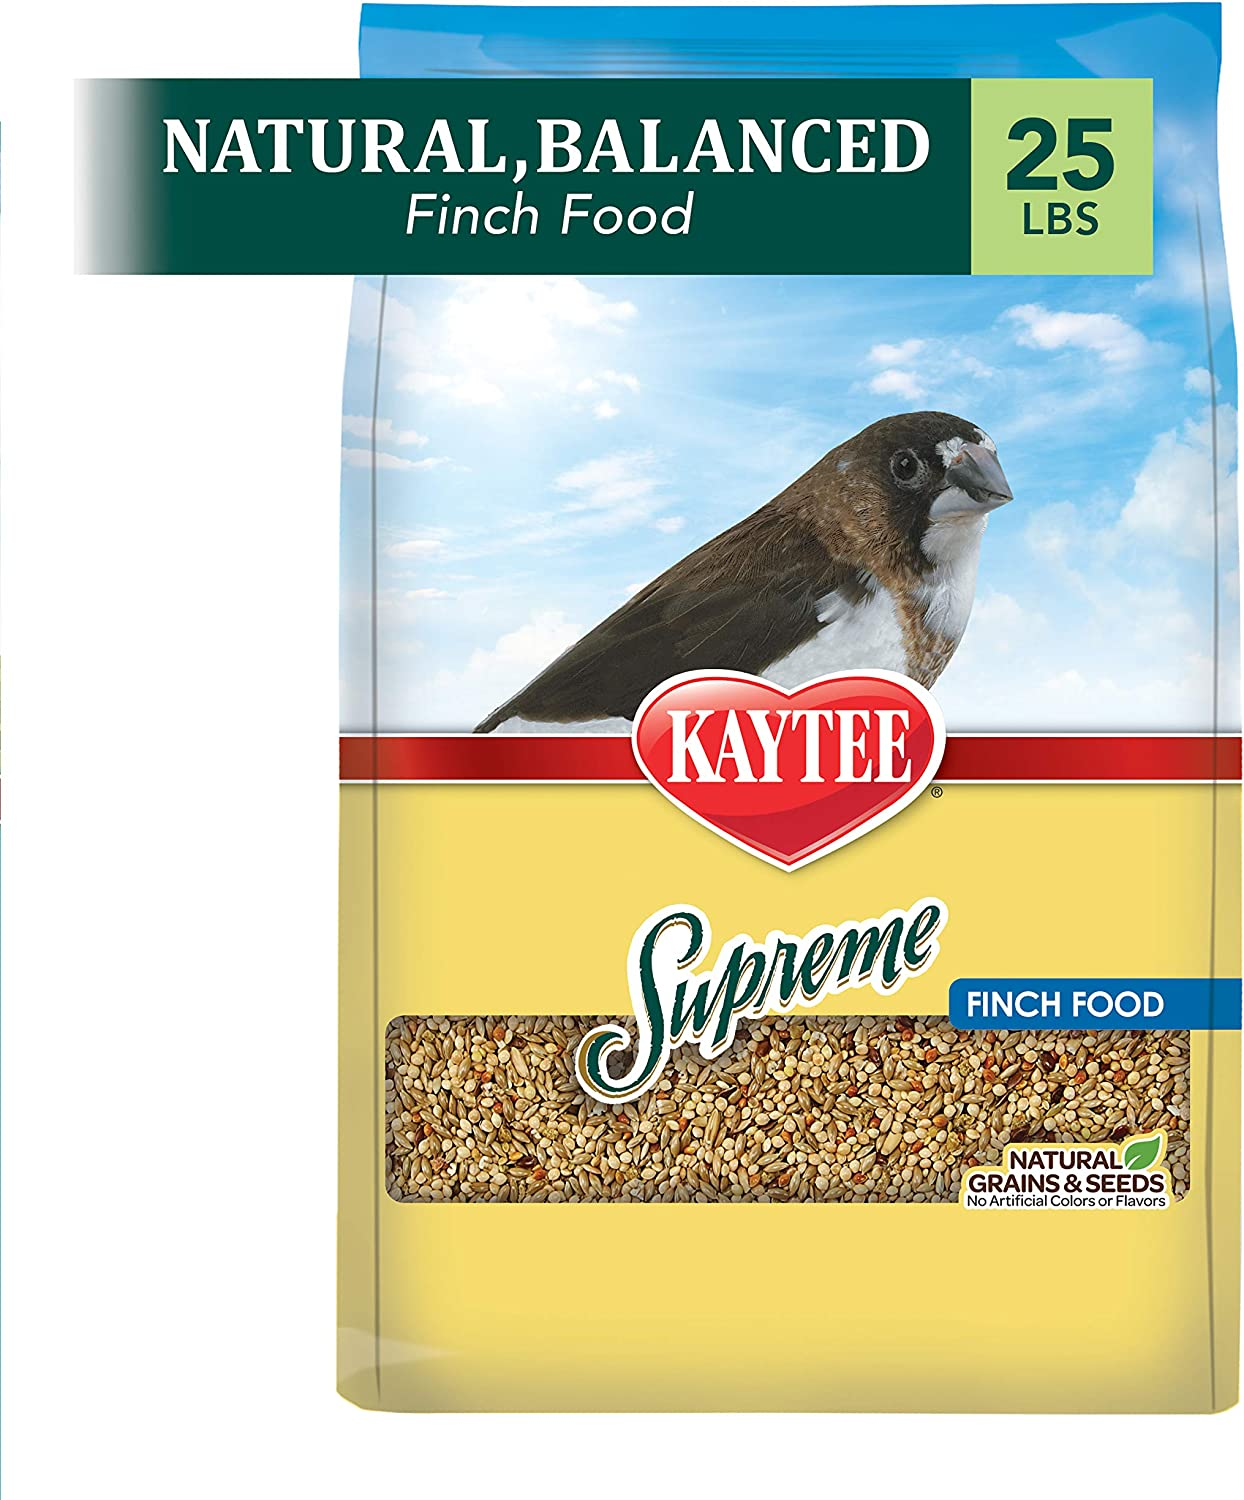 B0002AQNL8 Kaytee Supreme Finch Food 25 pound bag 81WaiEkDq8L